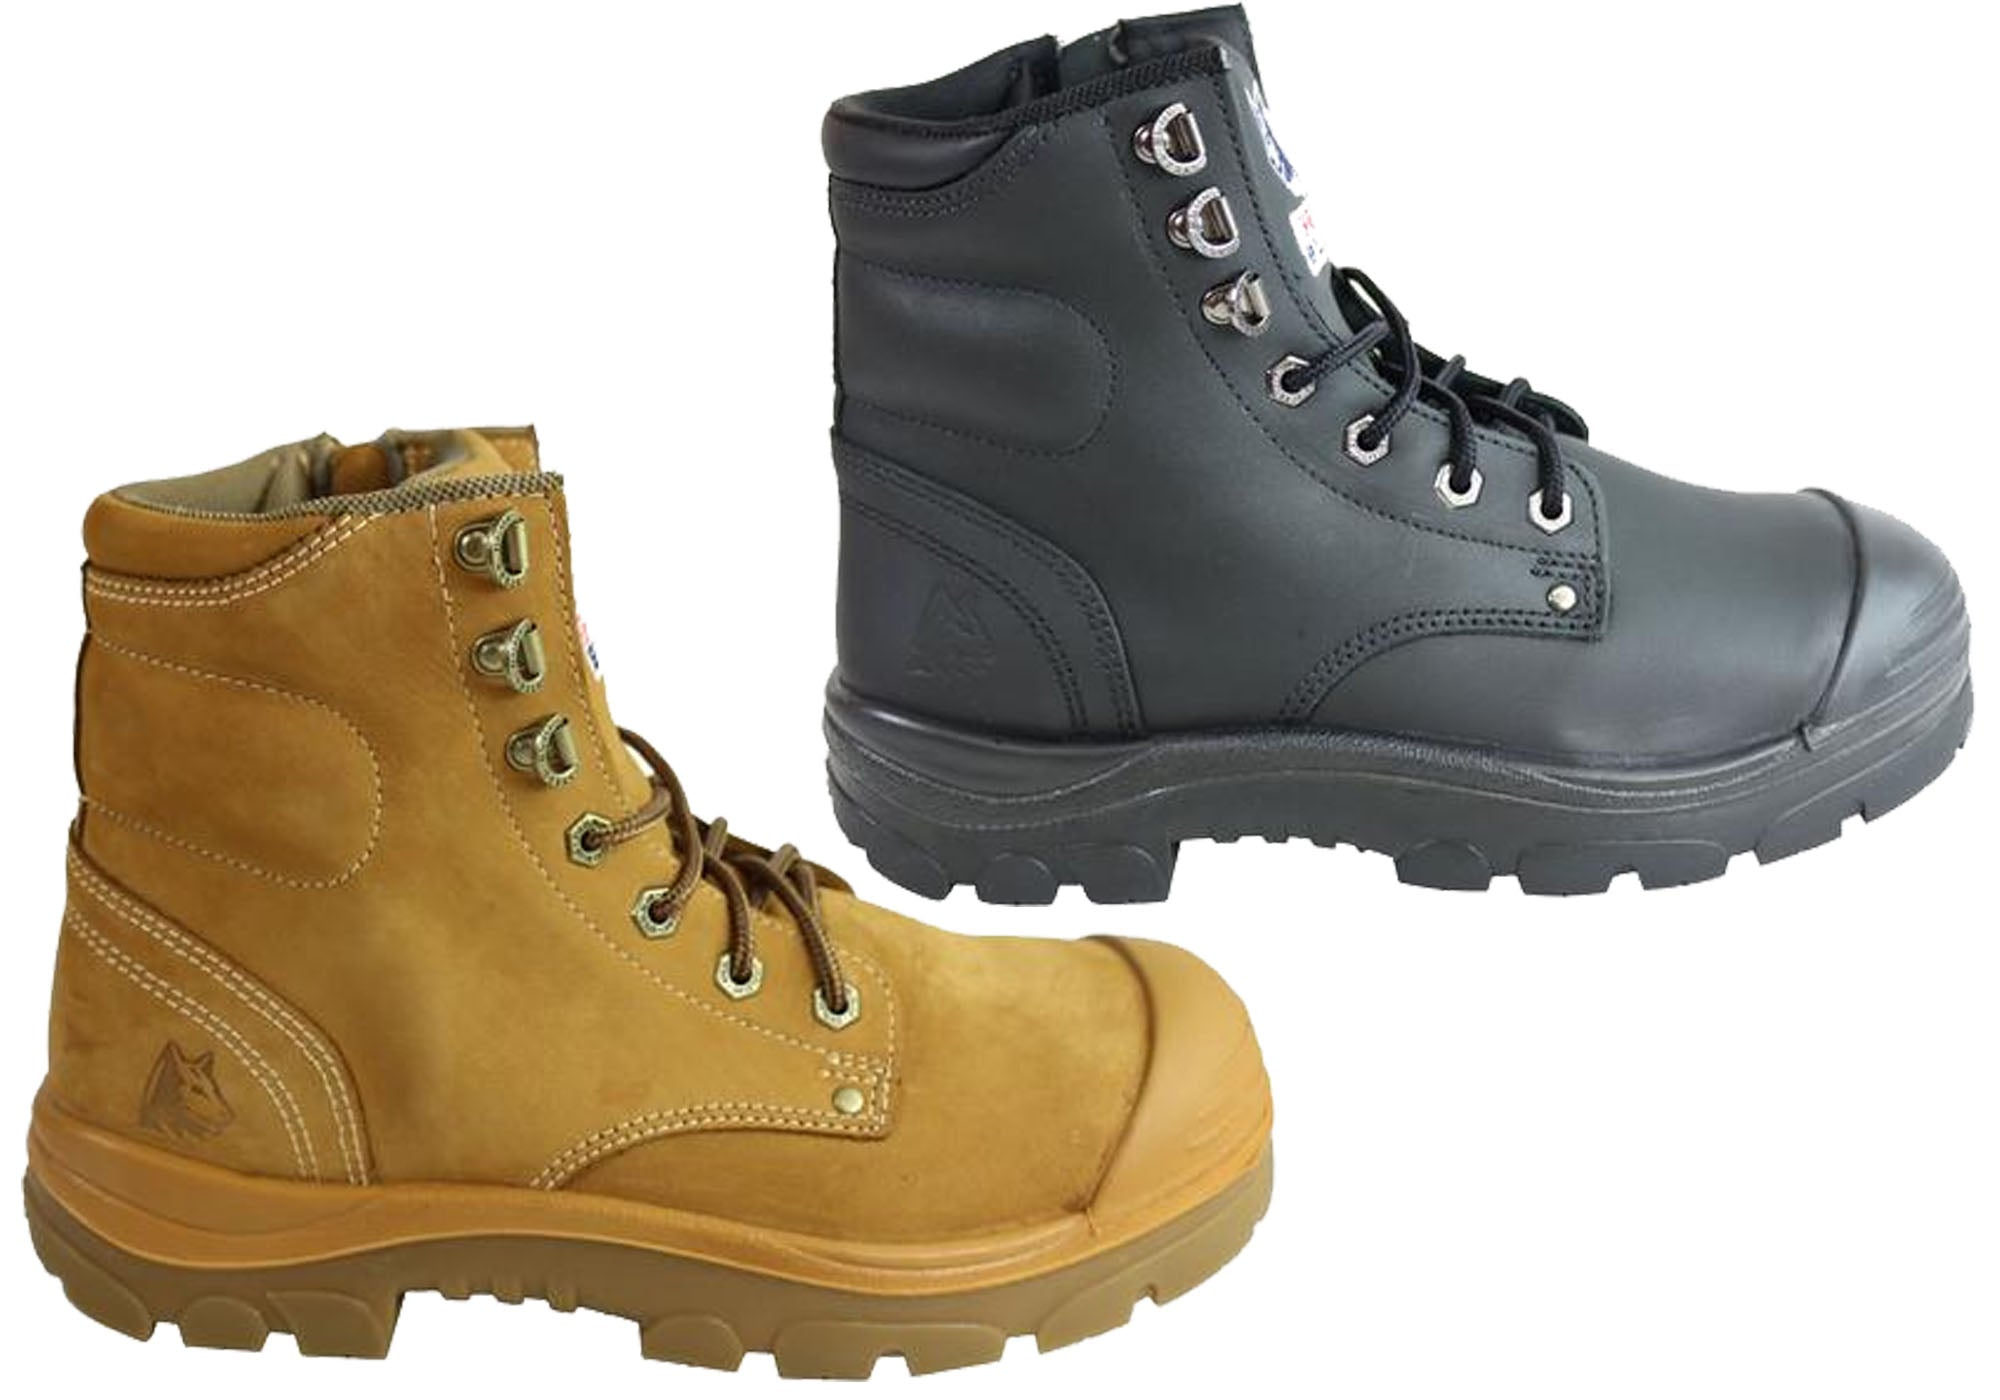 6f2262bdf98 Details about Steel Blue 332152 Argyle Lace Up Work Boot With Zip And Bump  Cap Mens - WWZ